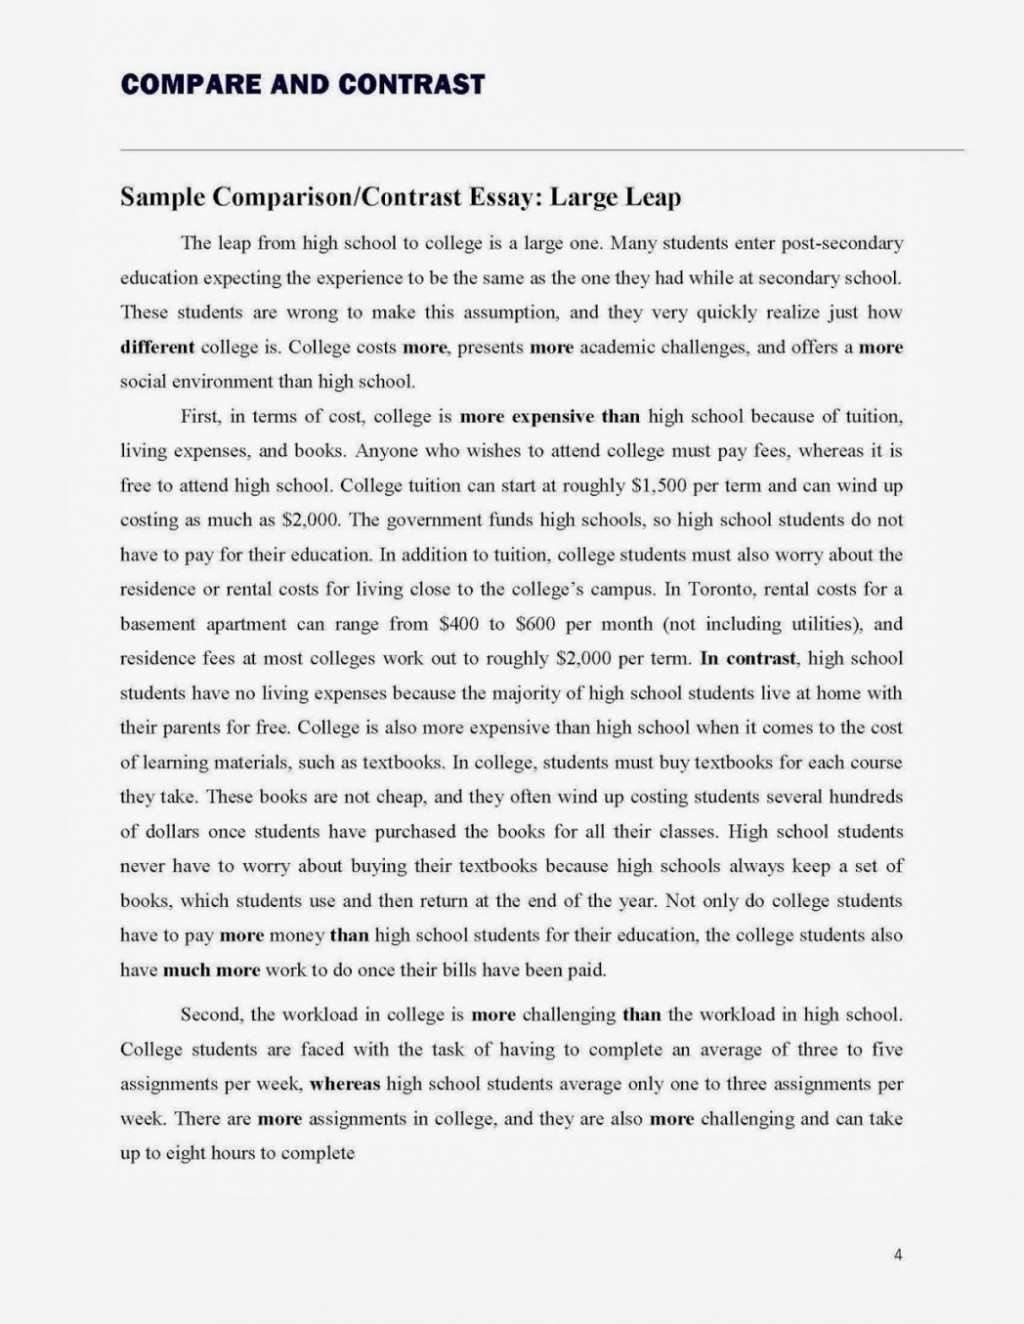 009 Essay Example Comparison And Contrast Examples College Compare That W Application Worked Striking Elementary Fourth Grade For Students Large